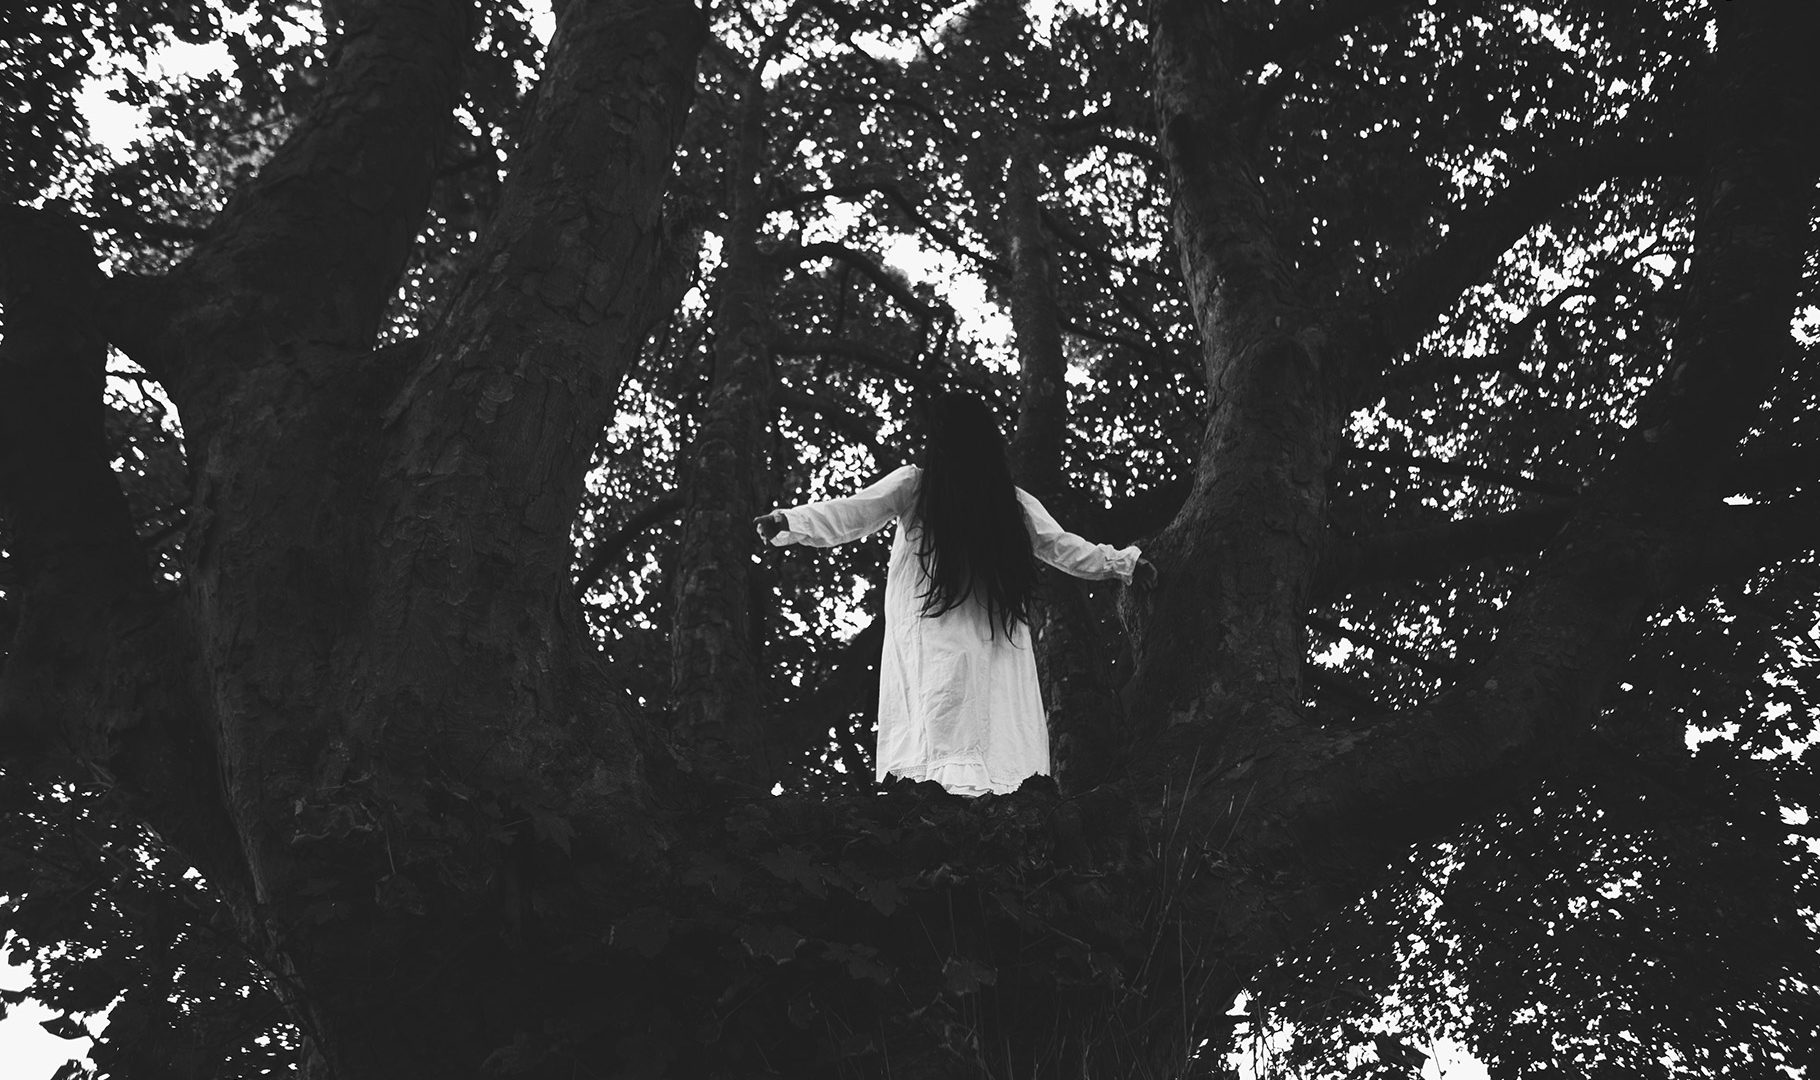 Ghost woman in white with long black hair in a tree